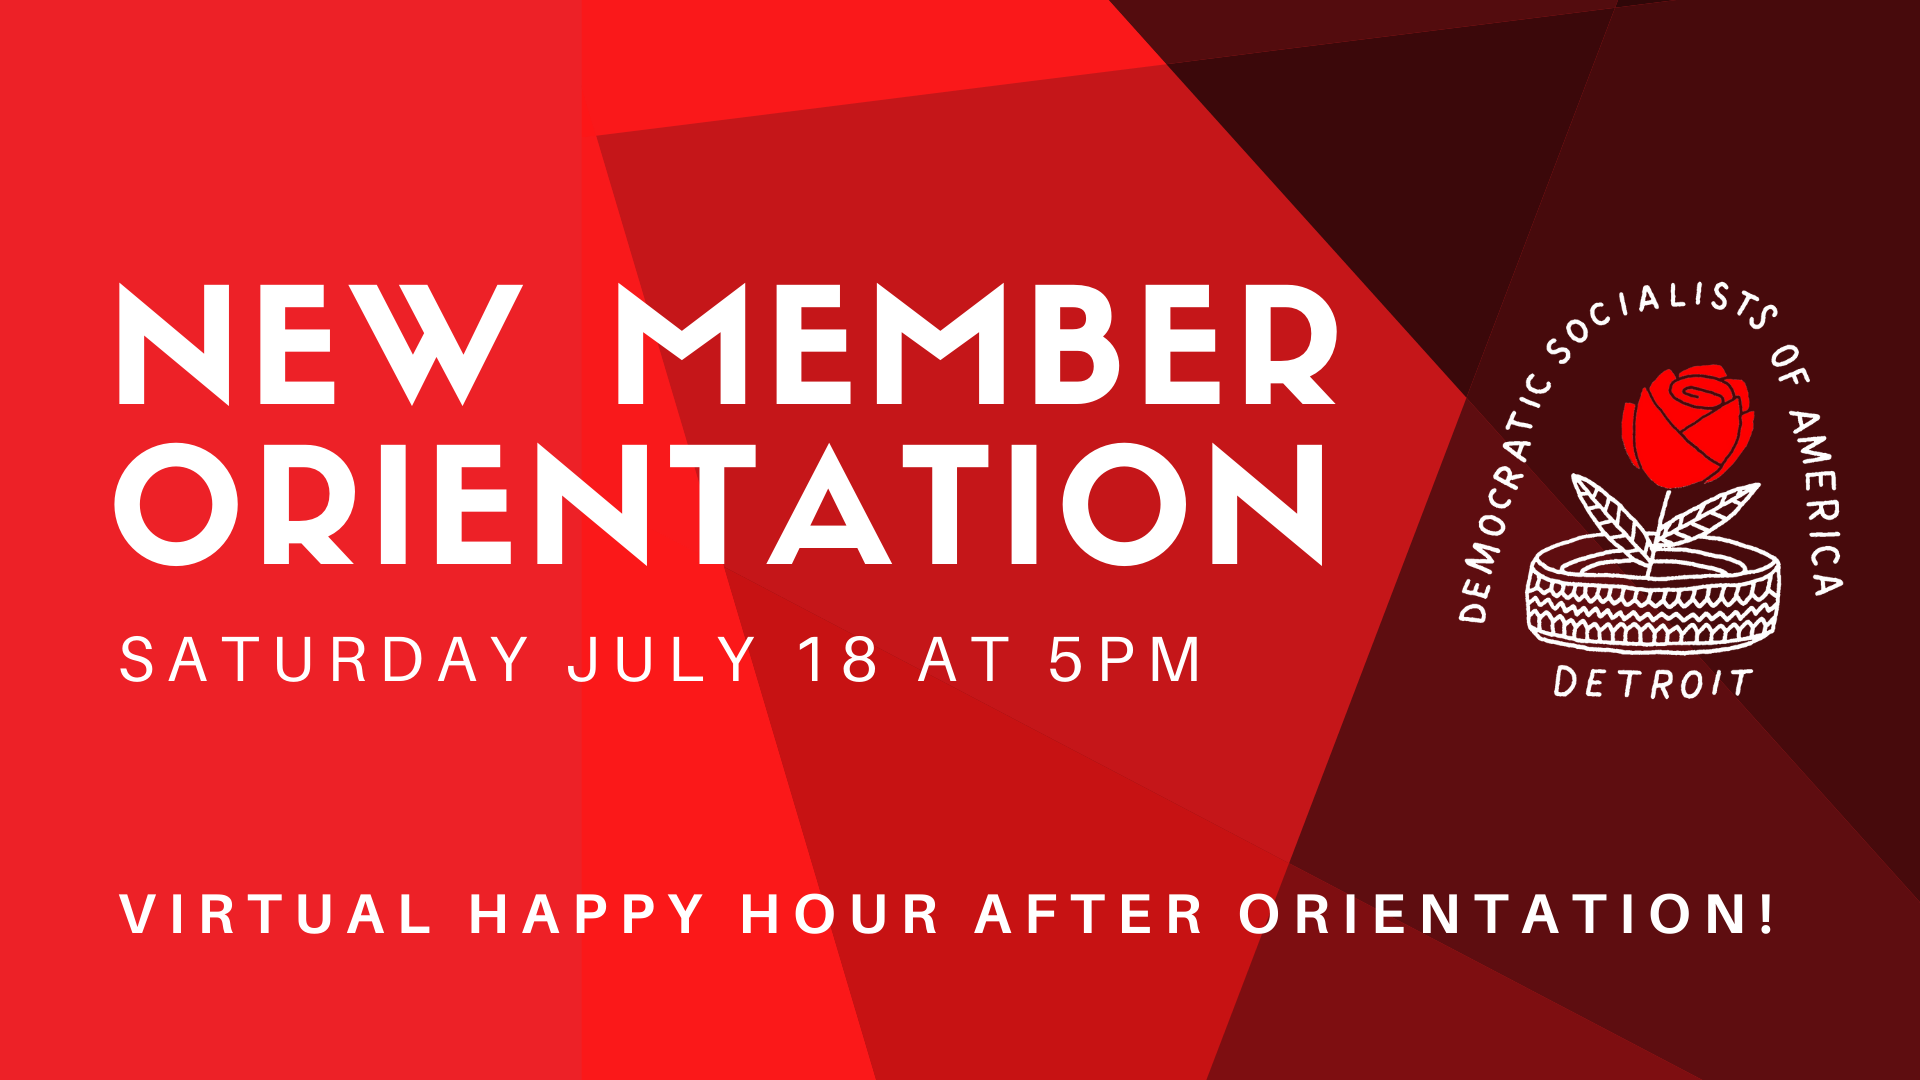 New_Member_Orientation_FB_Event_Banner.png